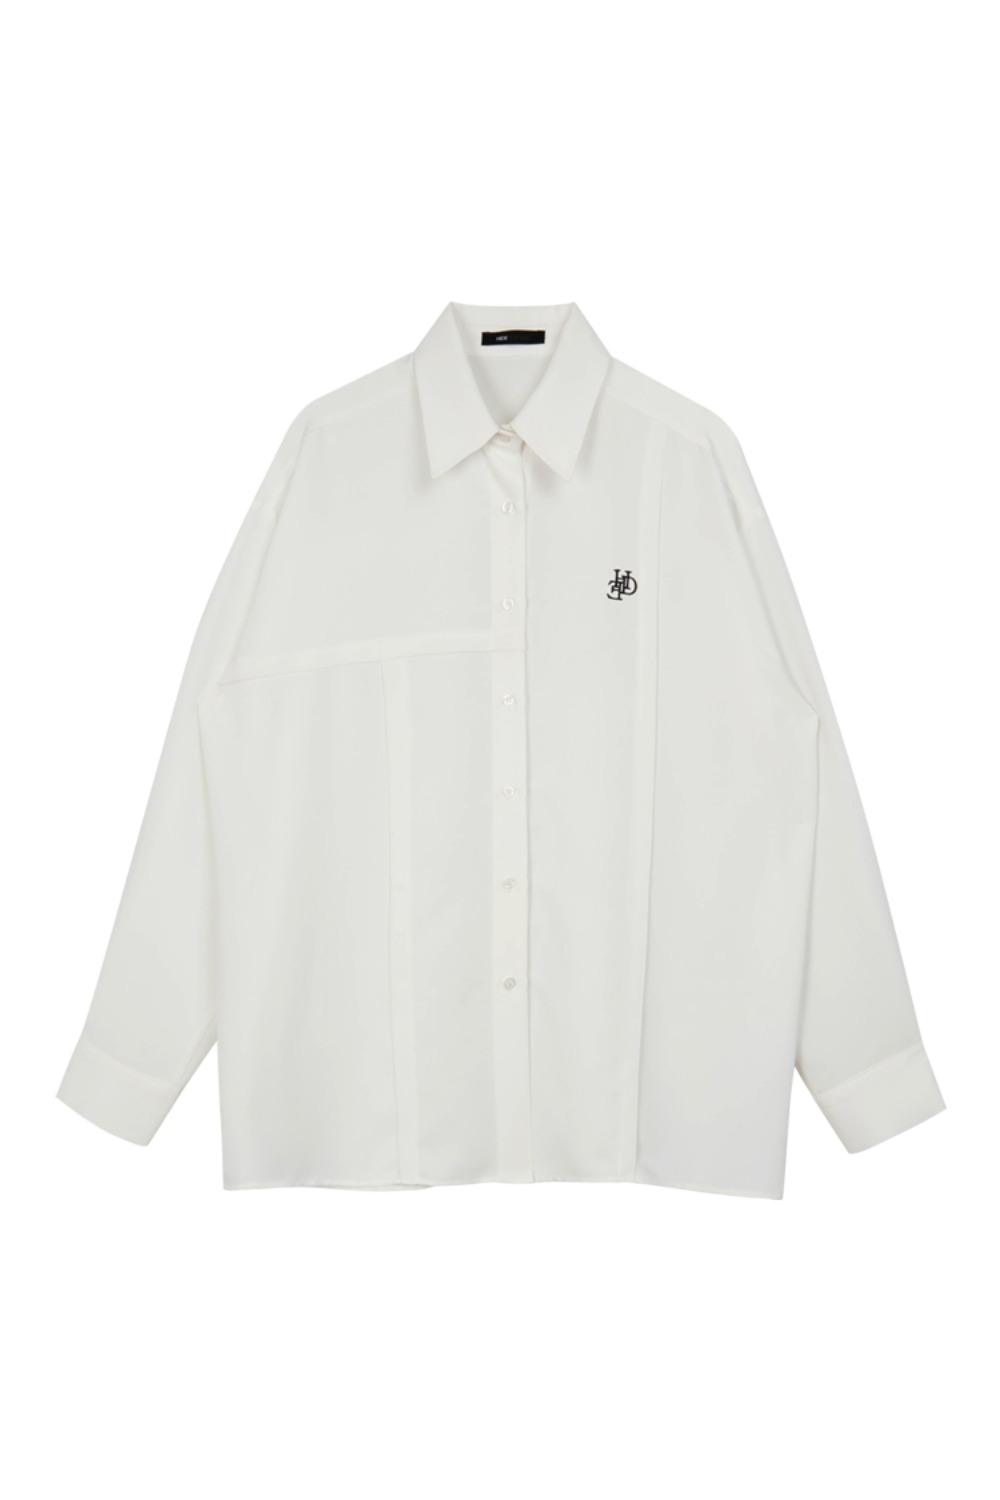 HIDE Logo Cutting Shirt IVORY